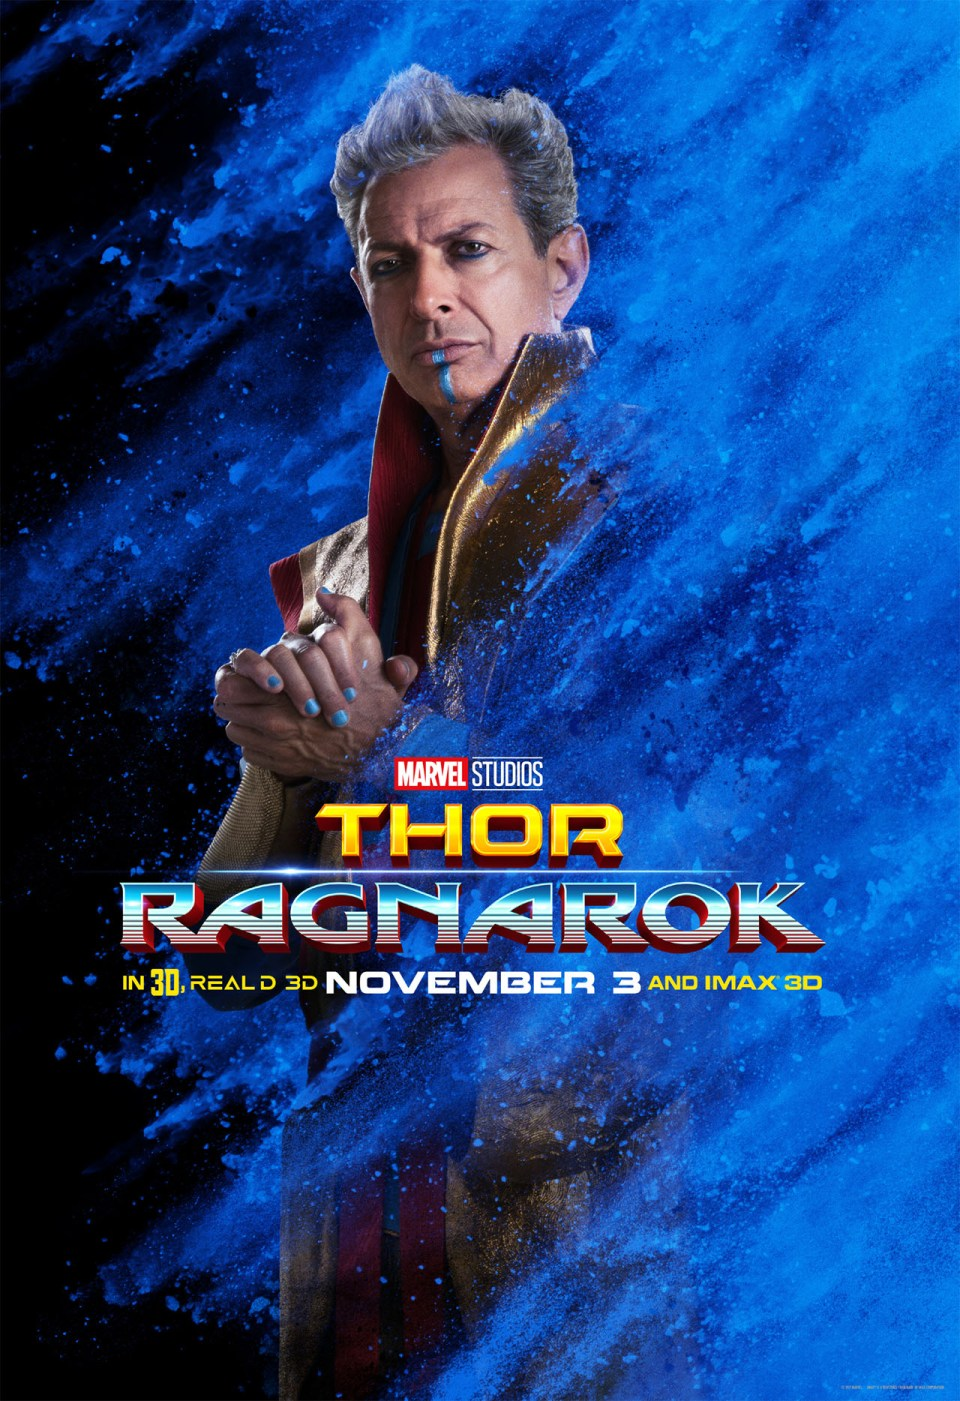 8-wild-thor-ragnarok-character-posters-give-the-heroes-and-villains-an-explosion-of-color7.jpeg